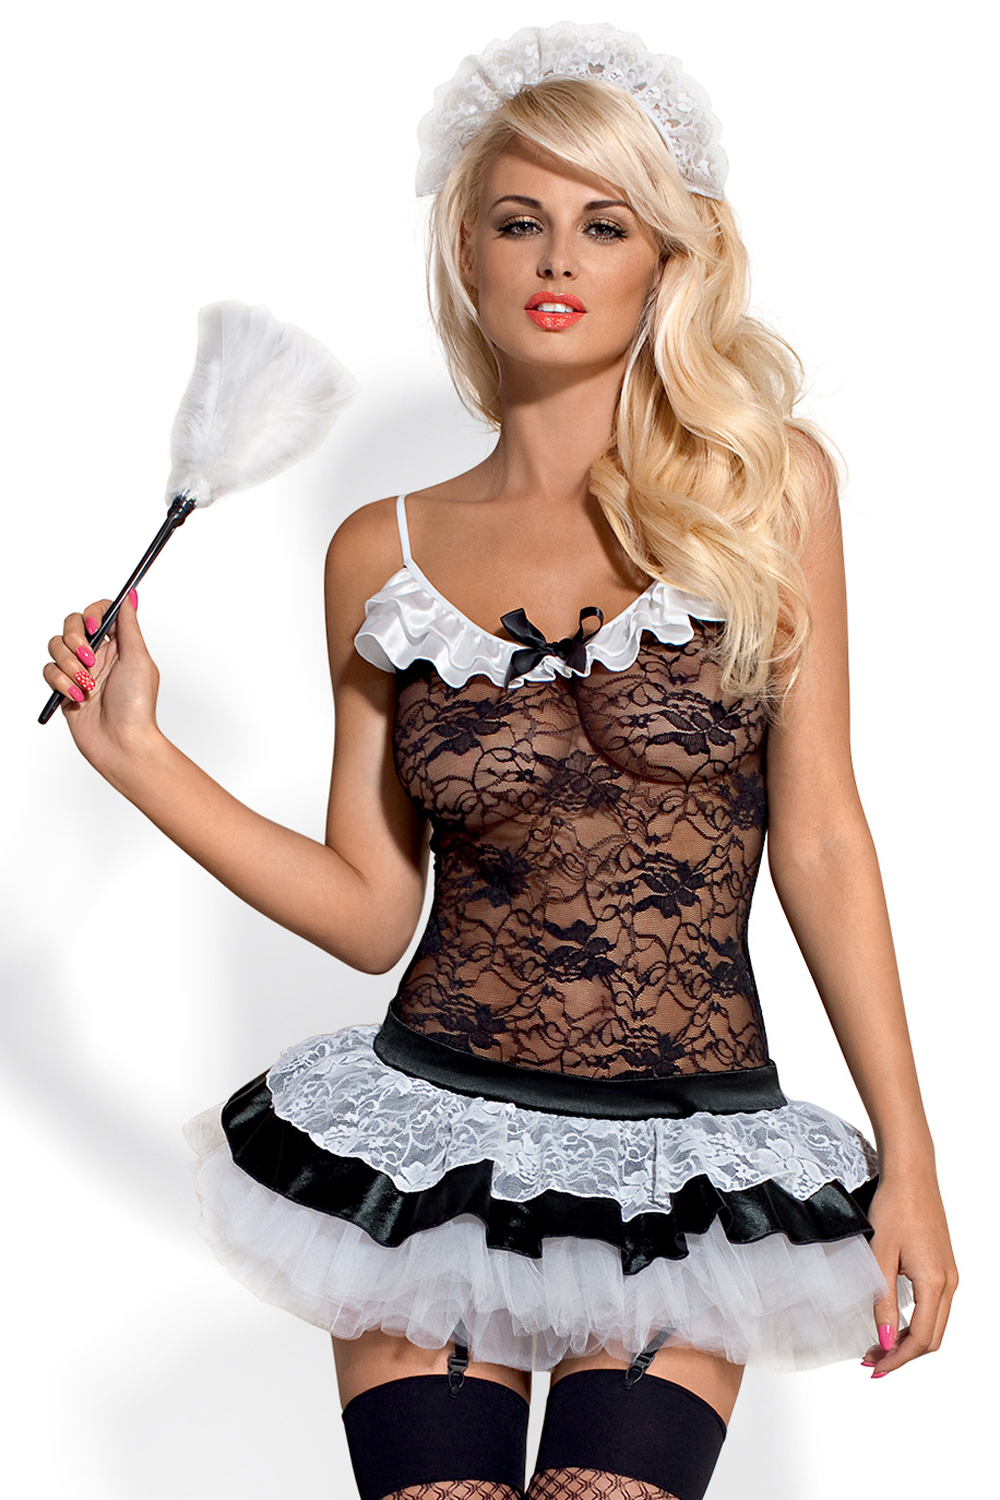 OBSSESIVE sexy home help costume 50010-8